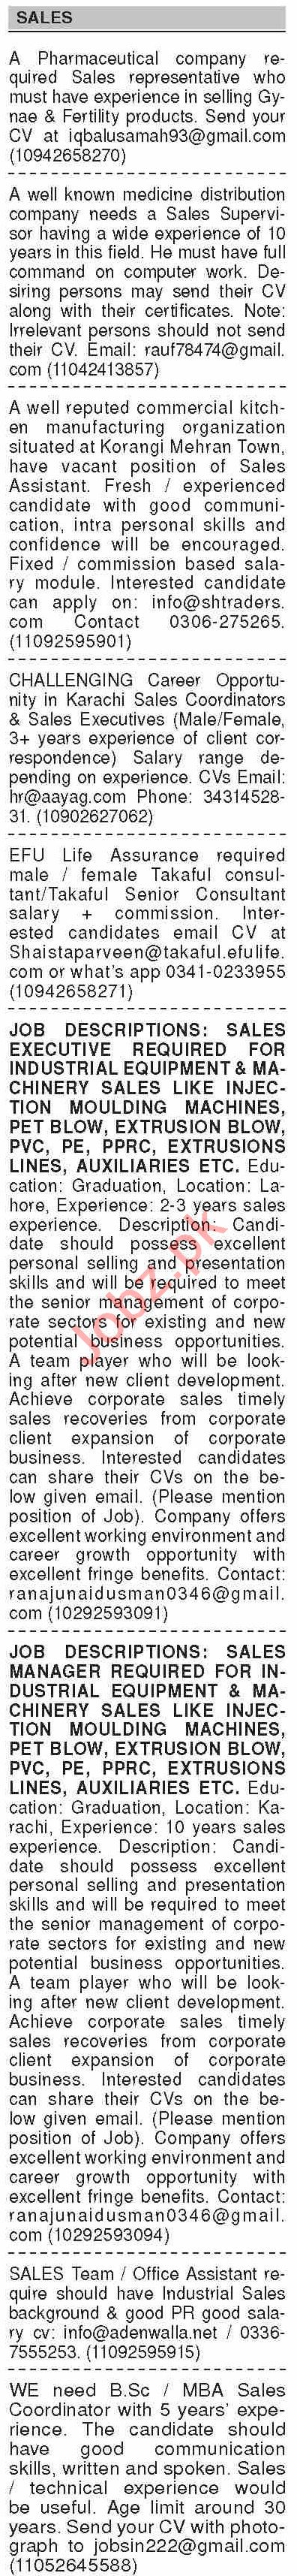 Dawn Sunday Classified Ads 28 Feb 2021 for Sales Staff